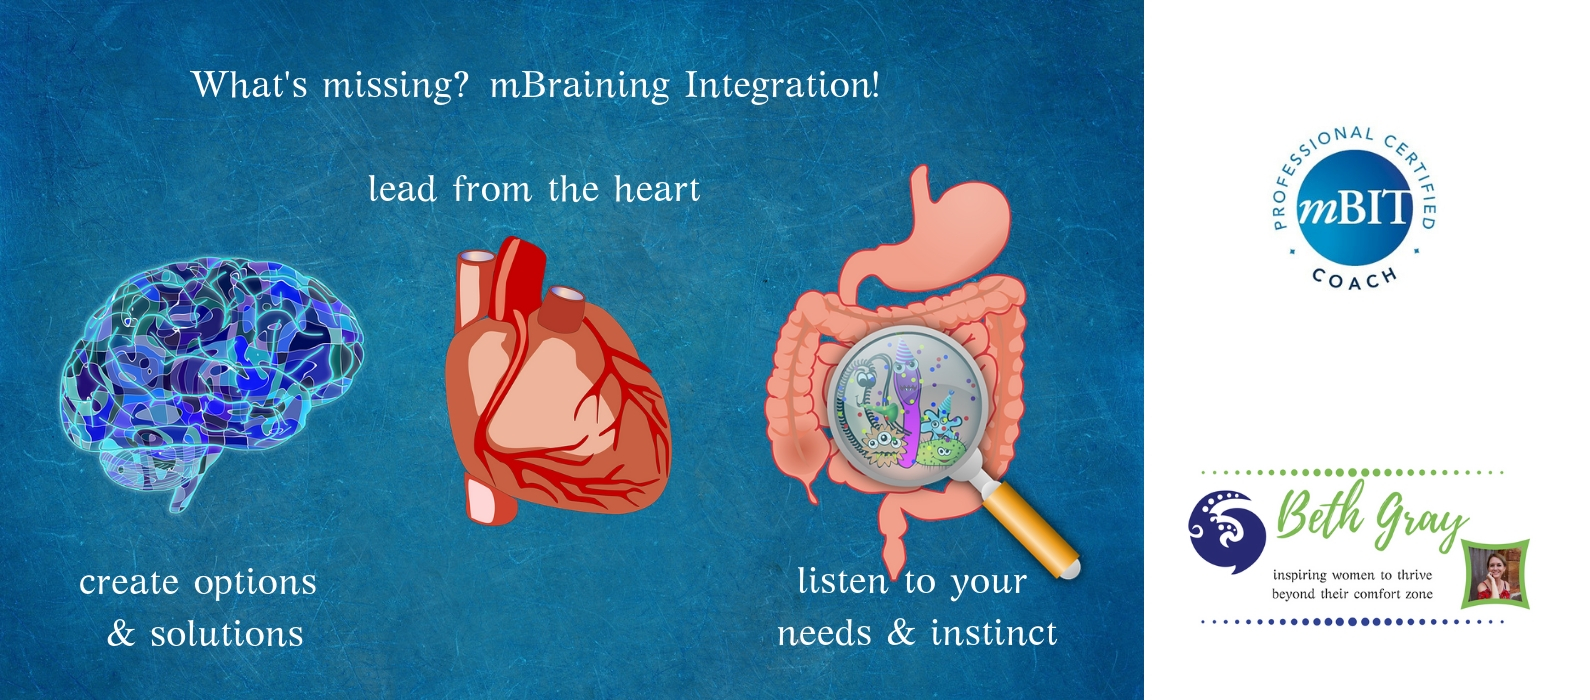 What's missing? mBraining integration, lead from the heart, create options & solutions, listen to your needs & instinct